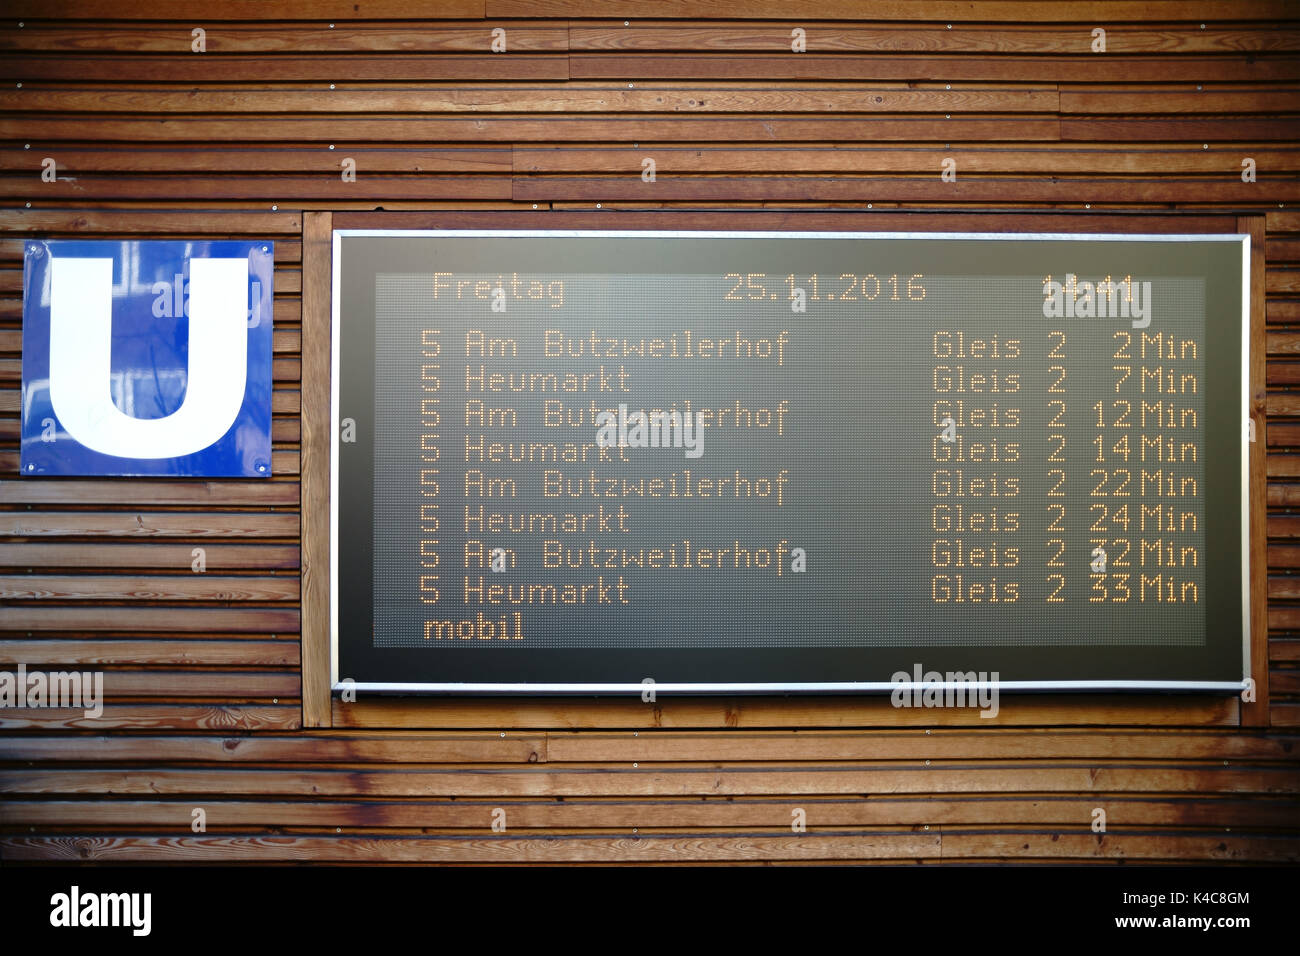 Digital Display Metro Cologne - Stock Image